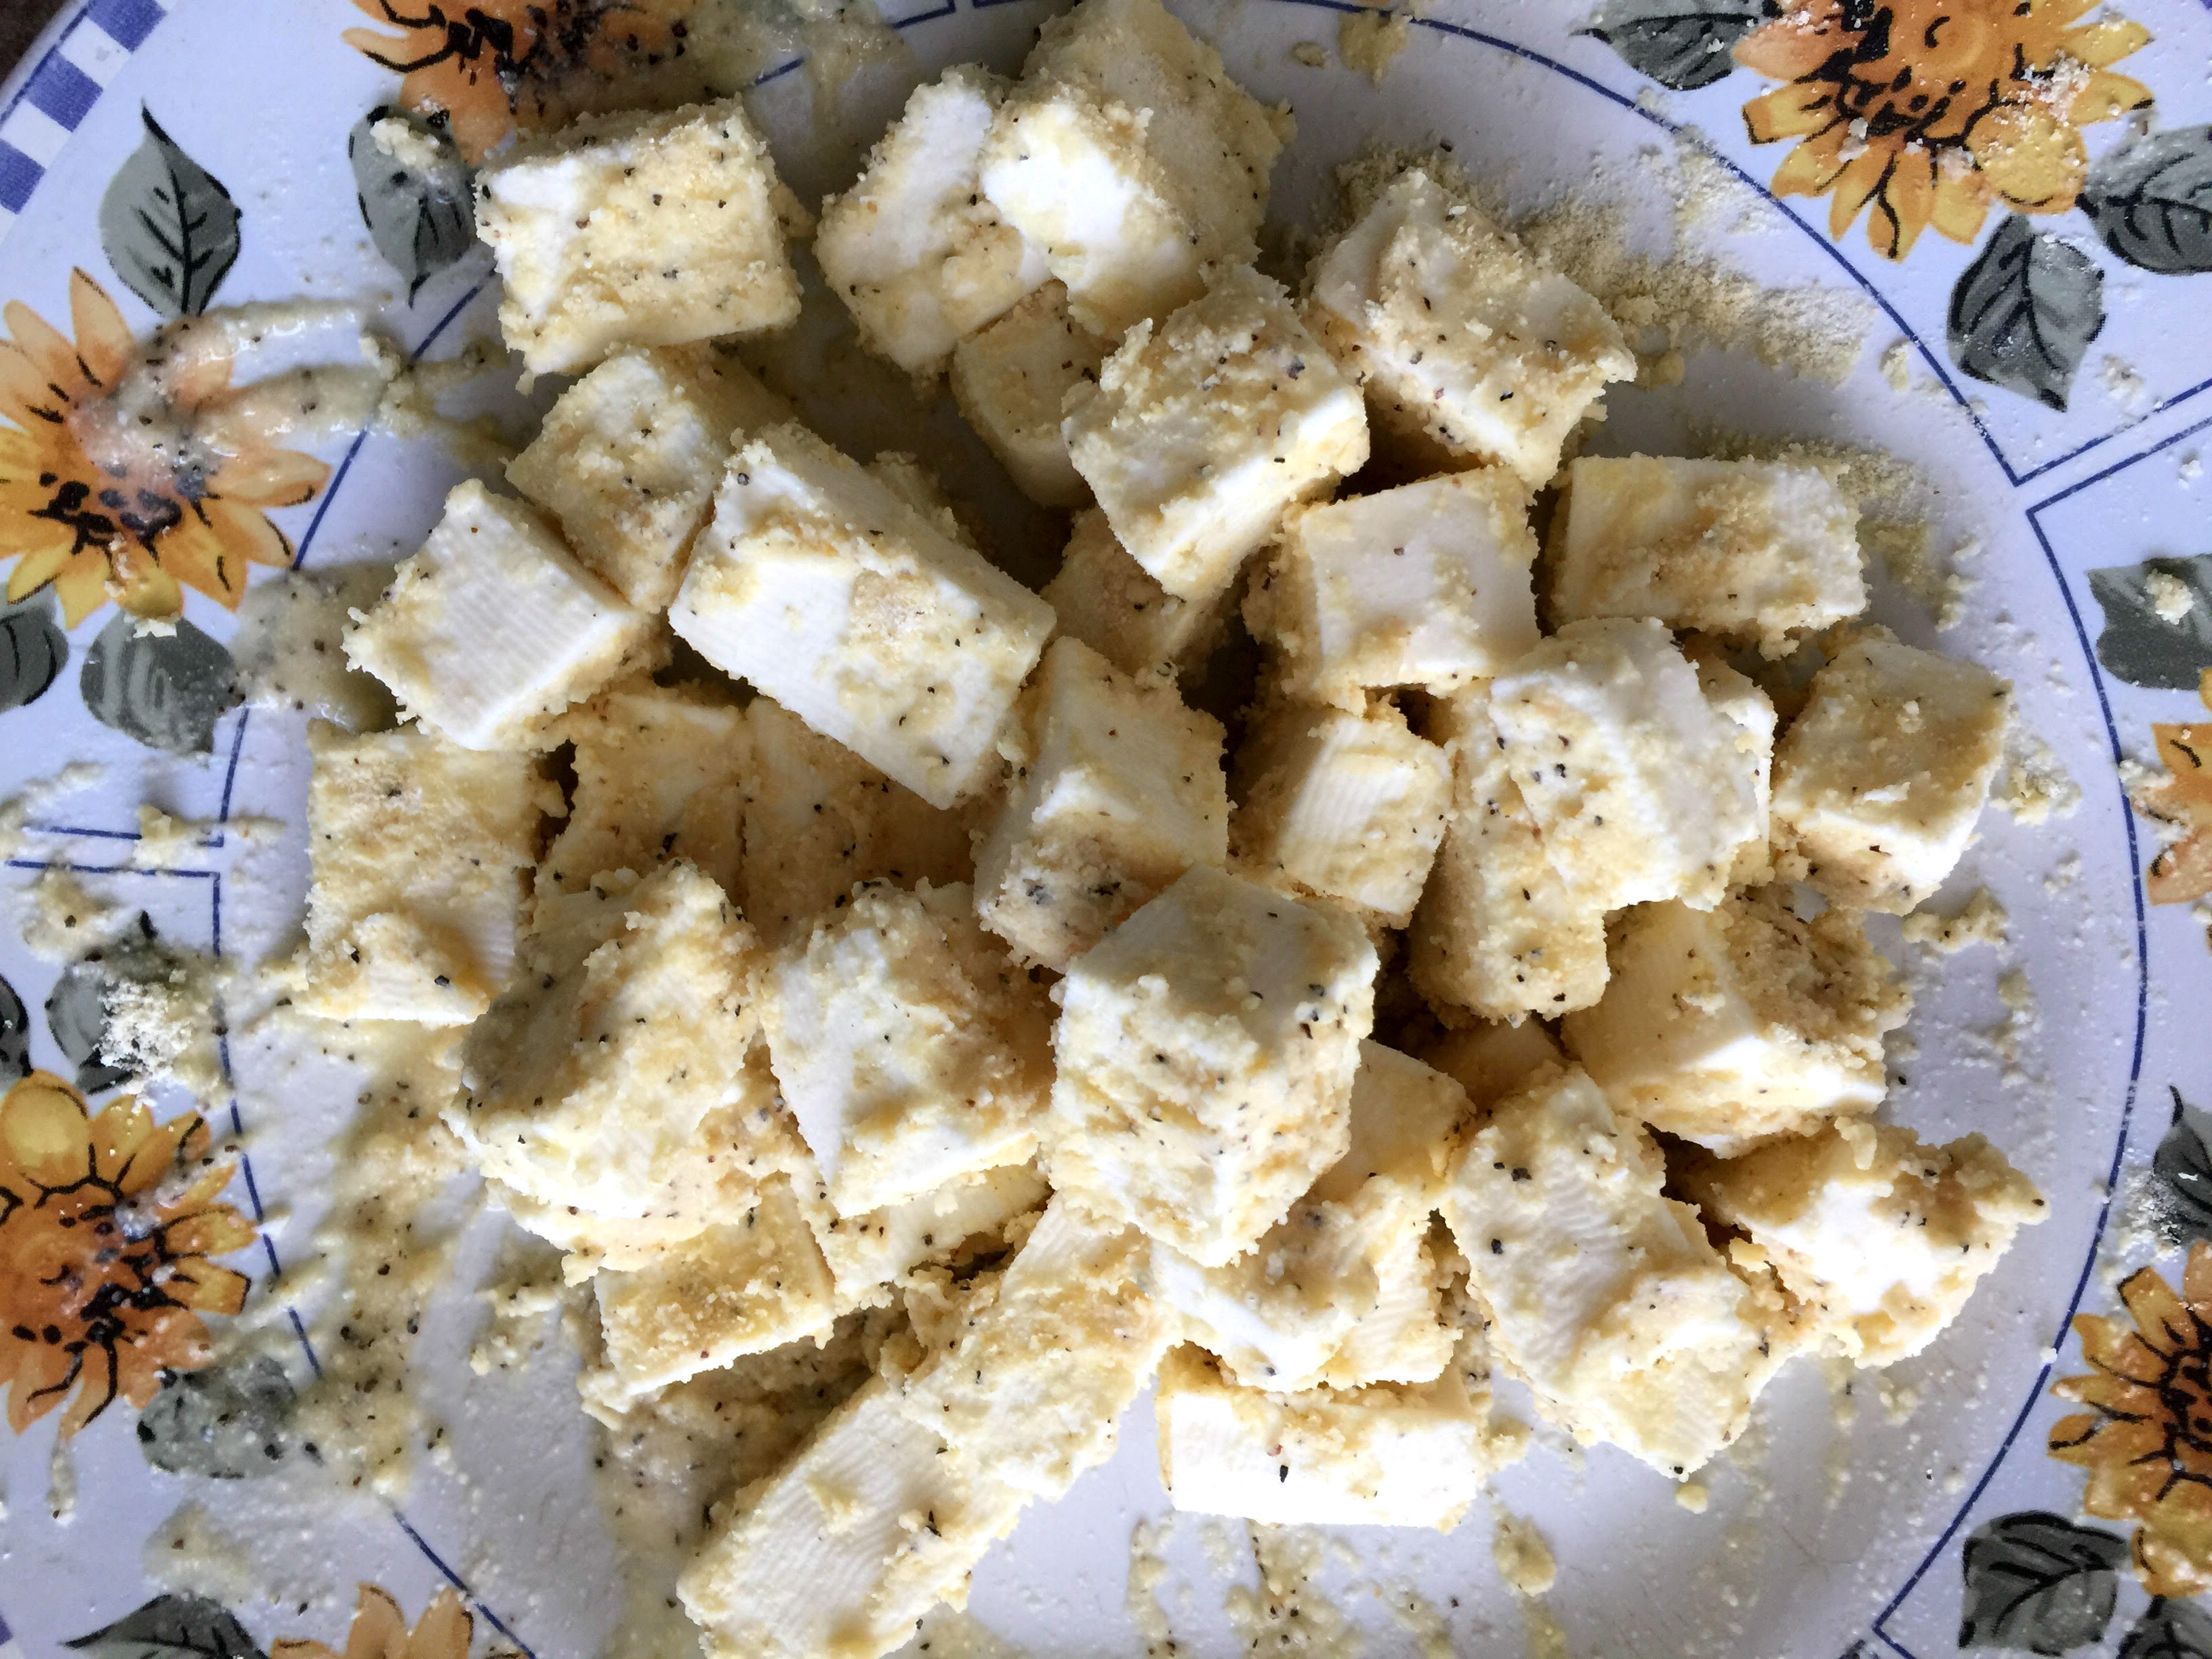 Paneer coated with cornflour paste